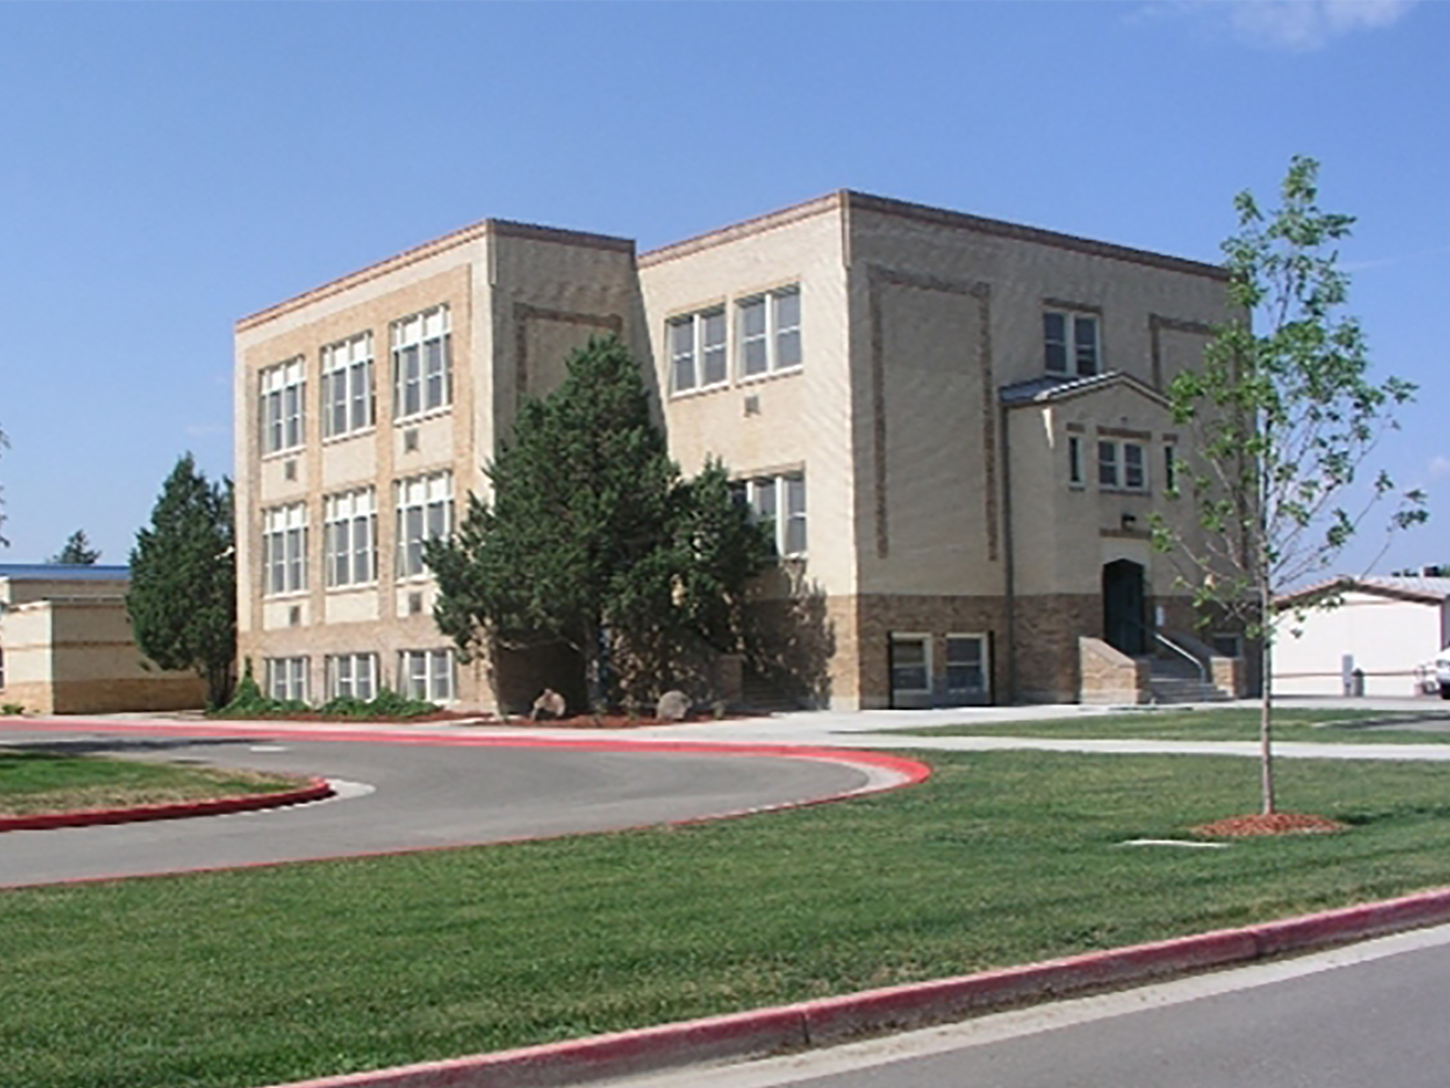 31-glendale-fort_collins-timnath_elementary_school-new_home